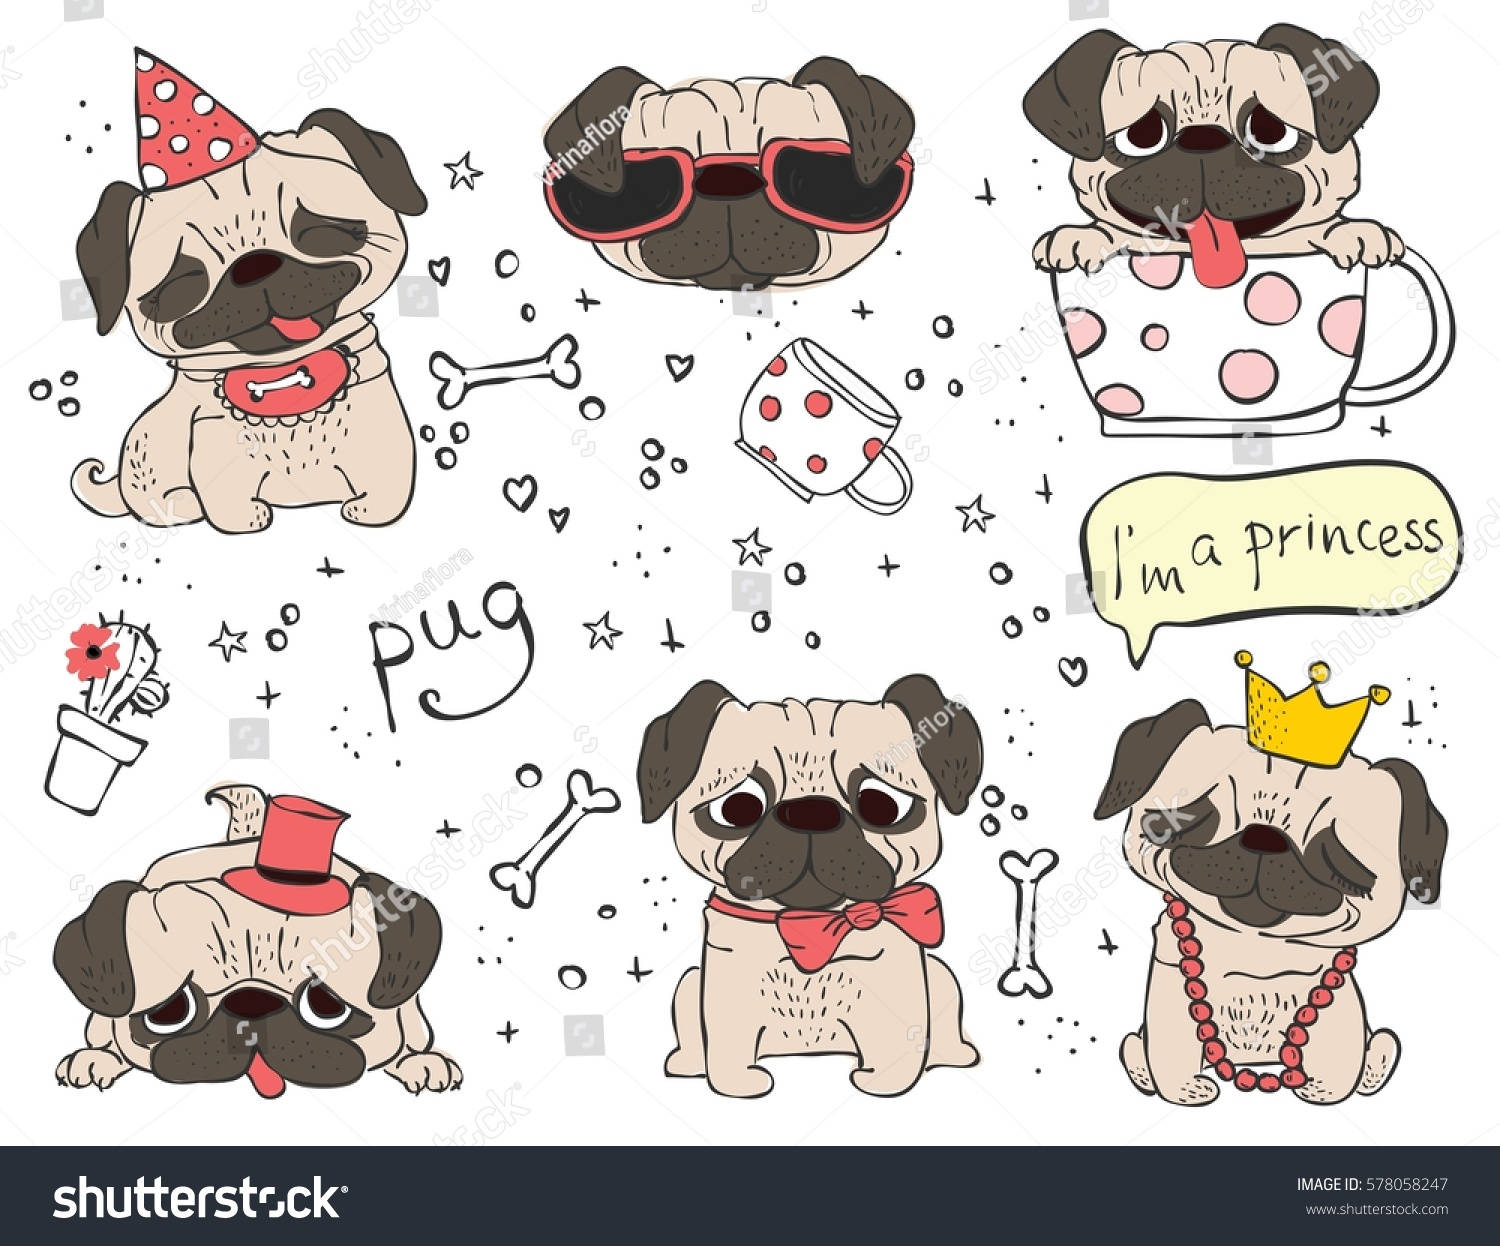 Vector Set Cute Doodle Dogs Pugs Stock Vector Royalty Free 578058247